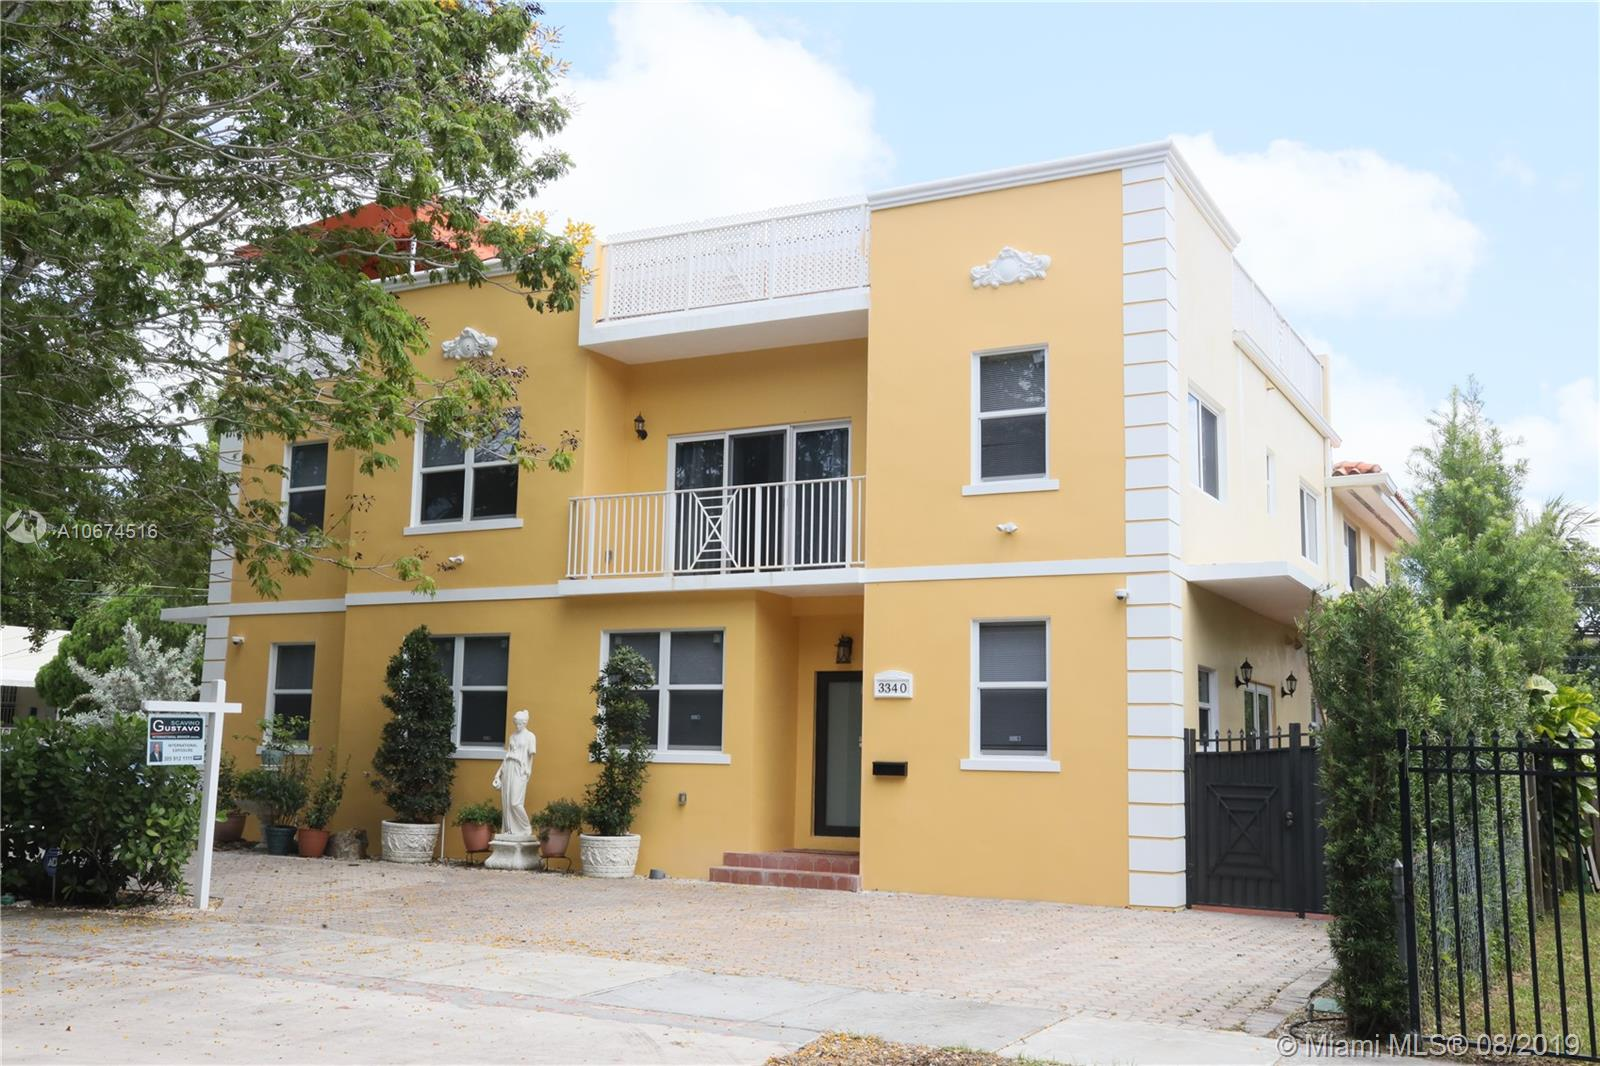 3340 SW 29 St  For Sale A10674516, FL